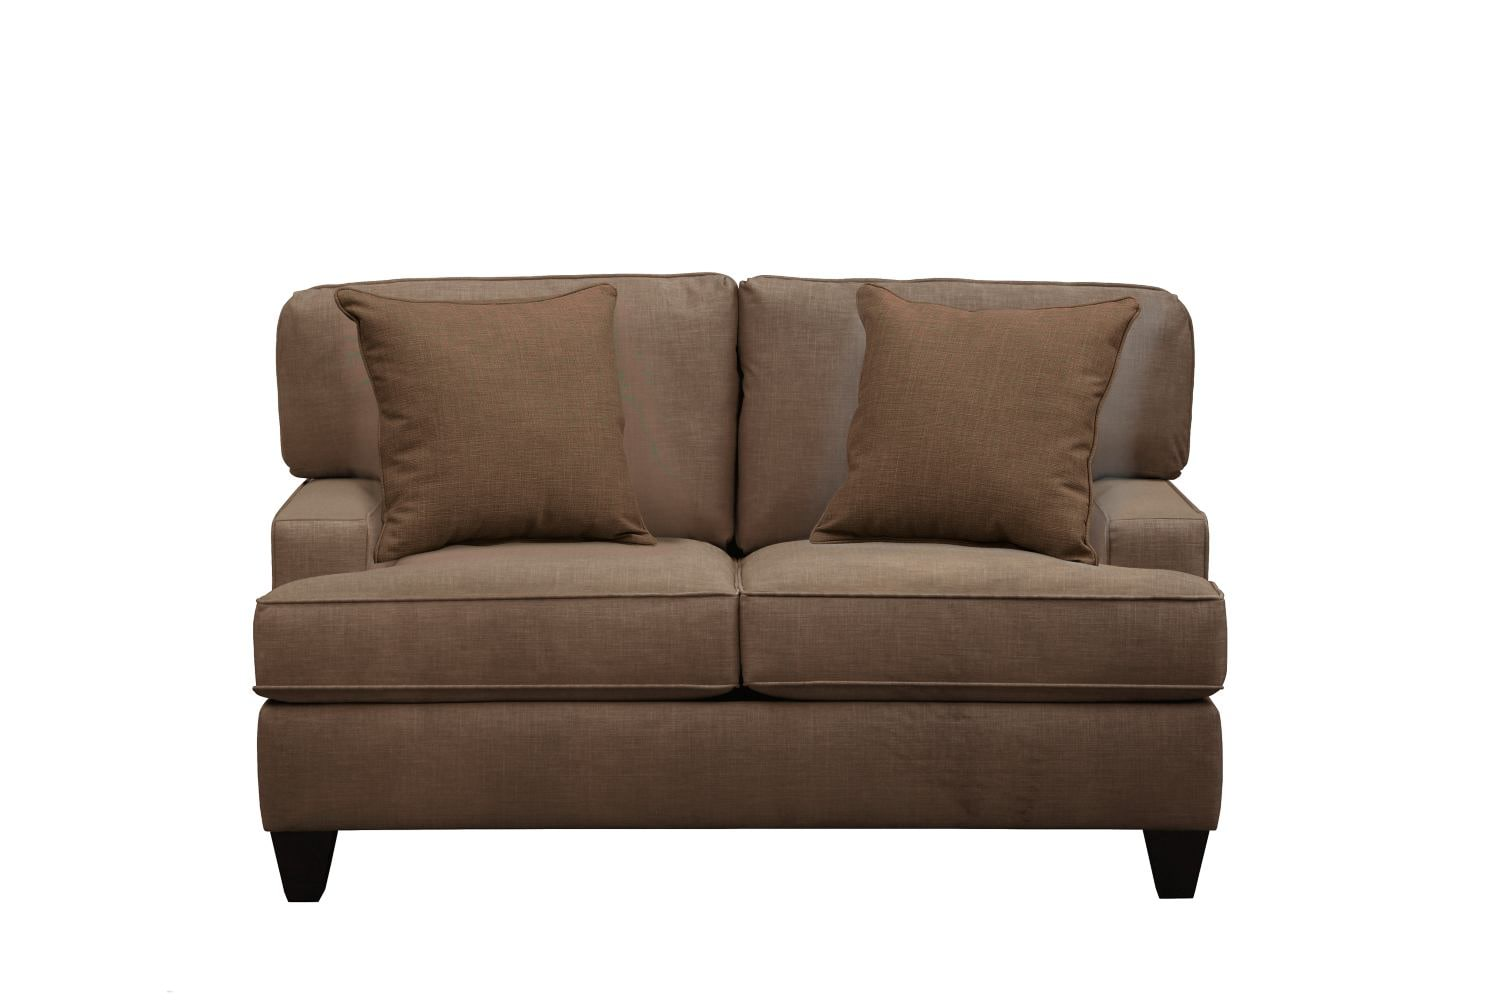 "Living Room Furniture - Conner Track Arm Sofa 63"" Oakley III Java w/ Oakley III Java Pillow"